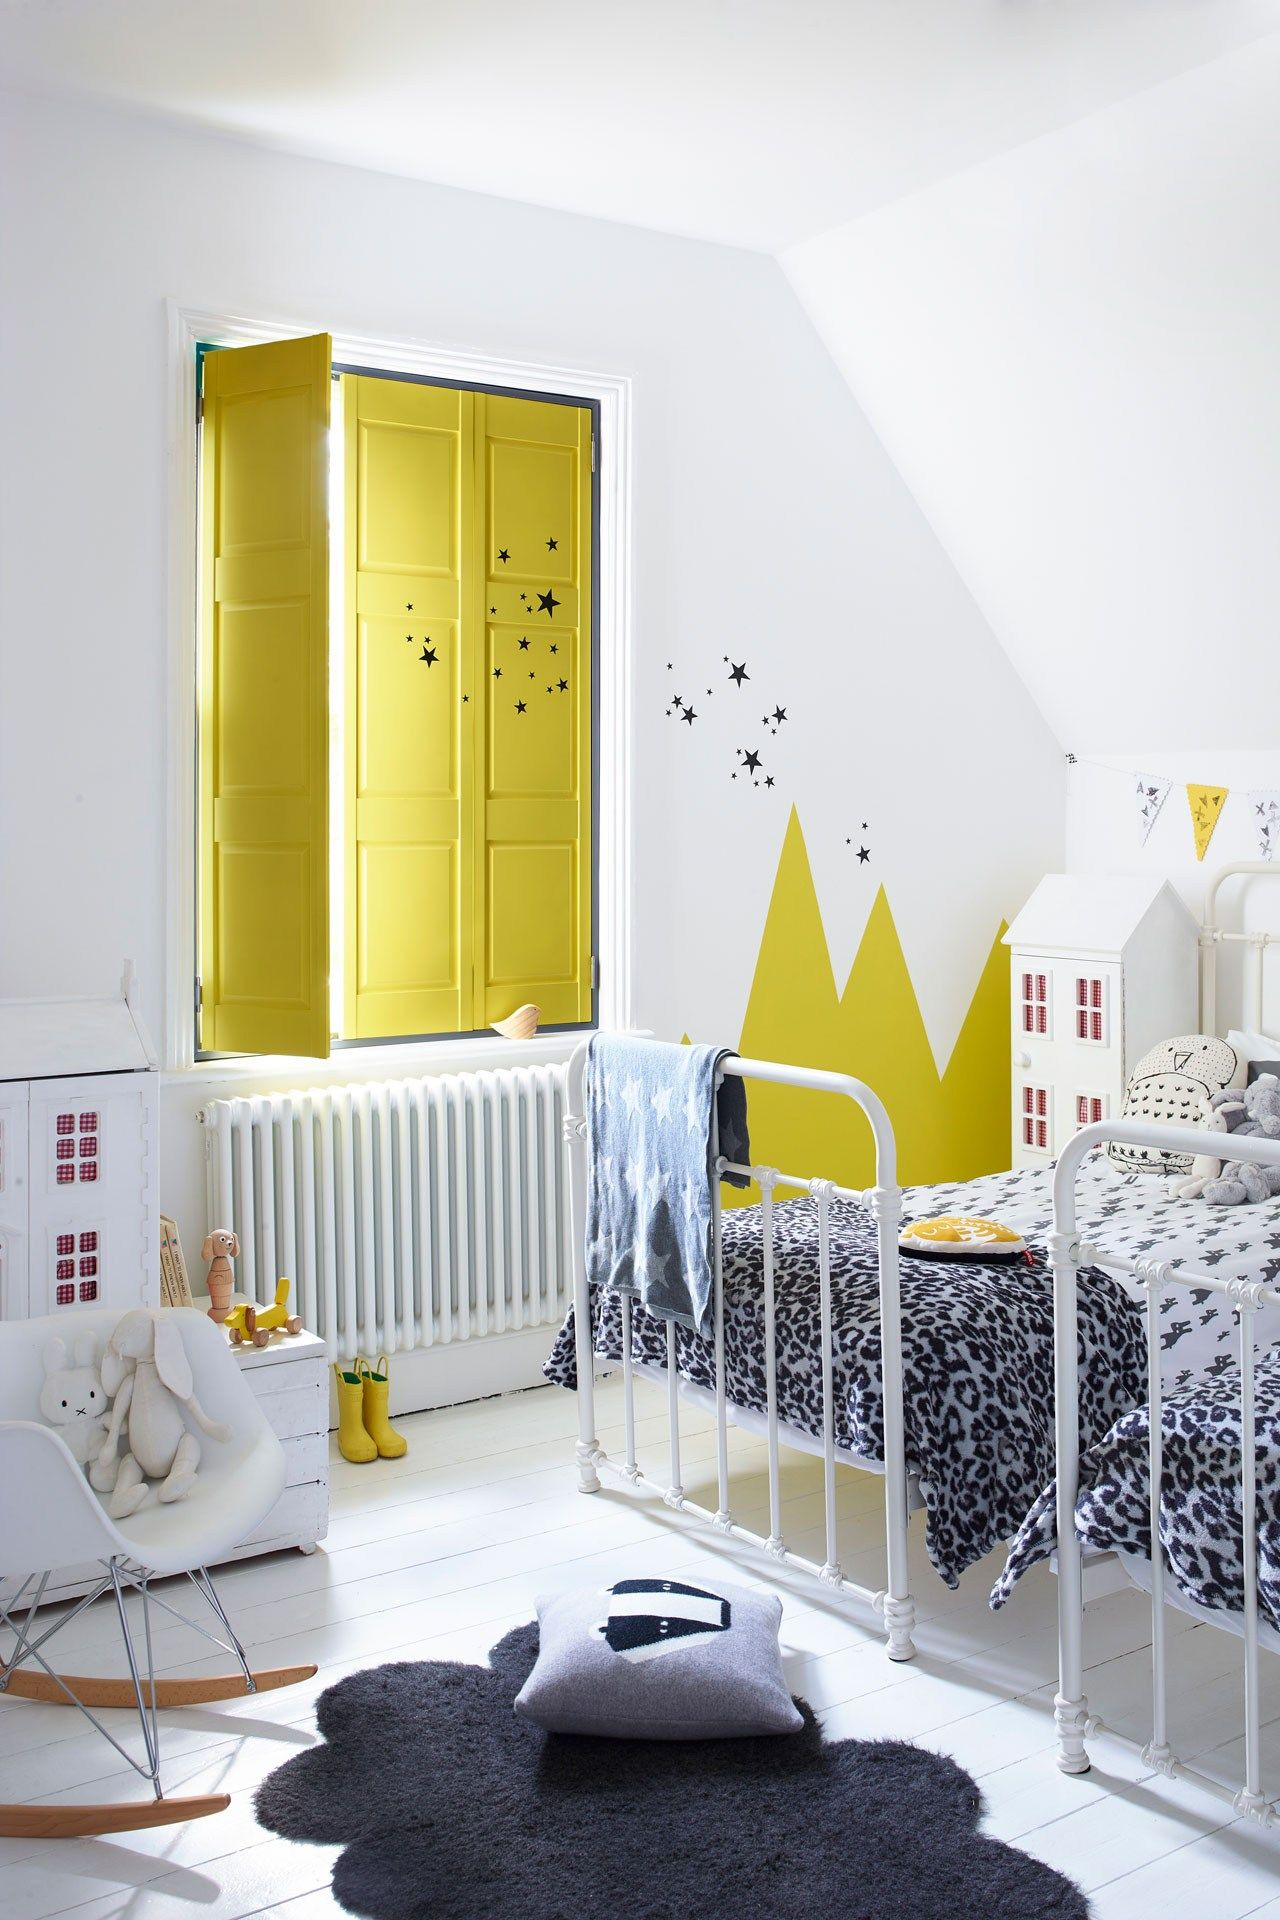 Children\'s bedrooms and playrooms | Pinterest | Bedrooms, Kids rooms ...